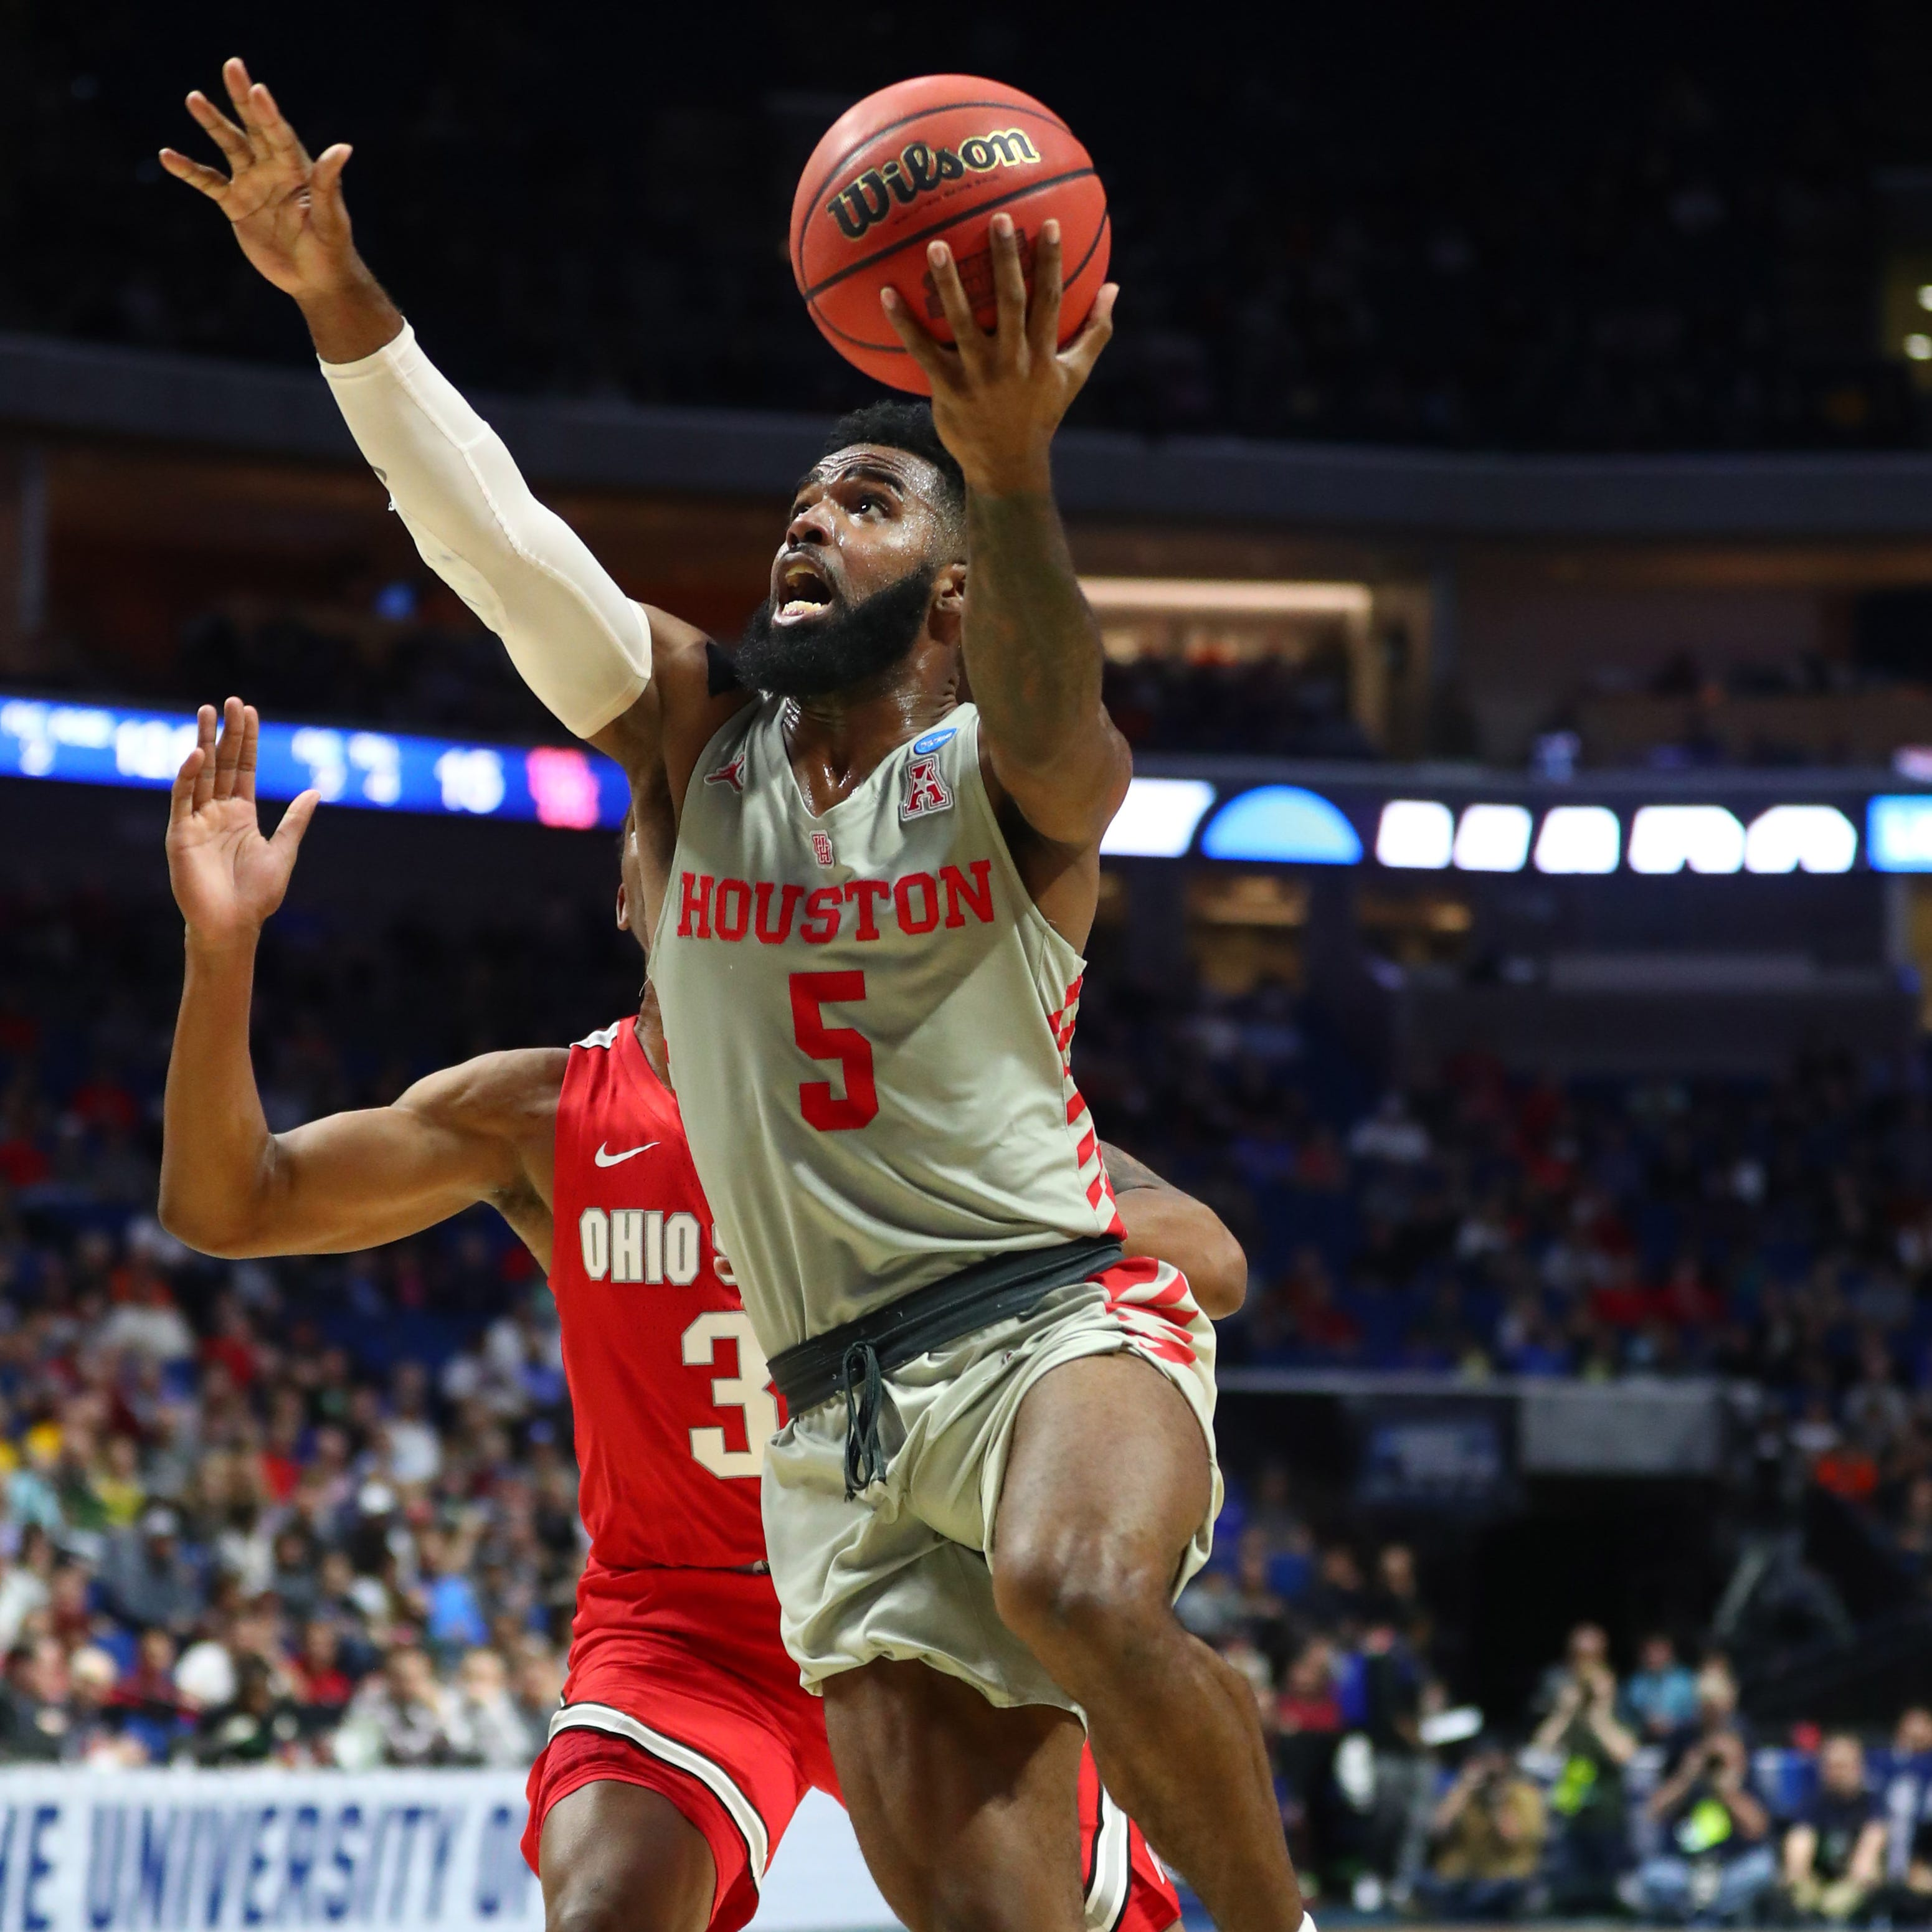 NCAA March Madness: Houston tops Ohio State to make first Sweet 16 since 1984